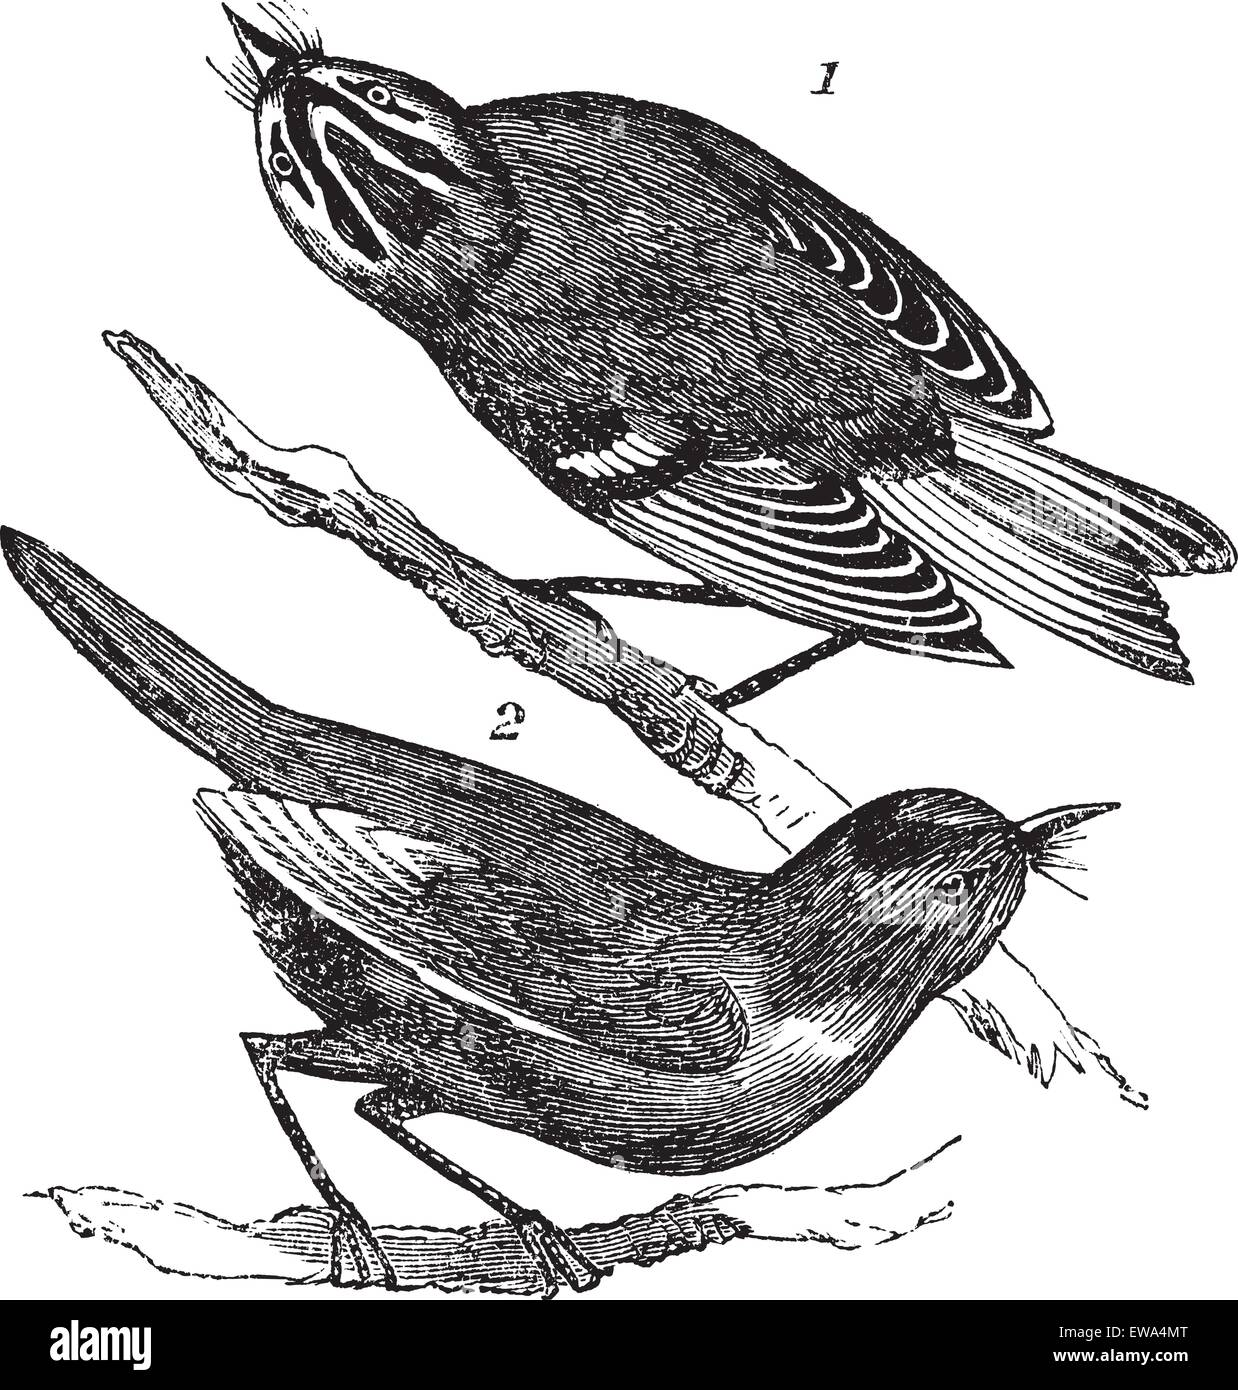 Golden-crowned Kinglet or Regulus satrapa and Ruby-crowned Kinglet or Regulus calendula, vintage engraving. Old - Stock Vector